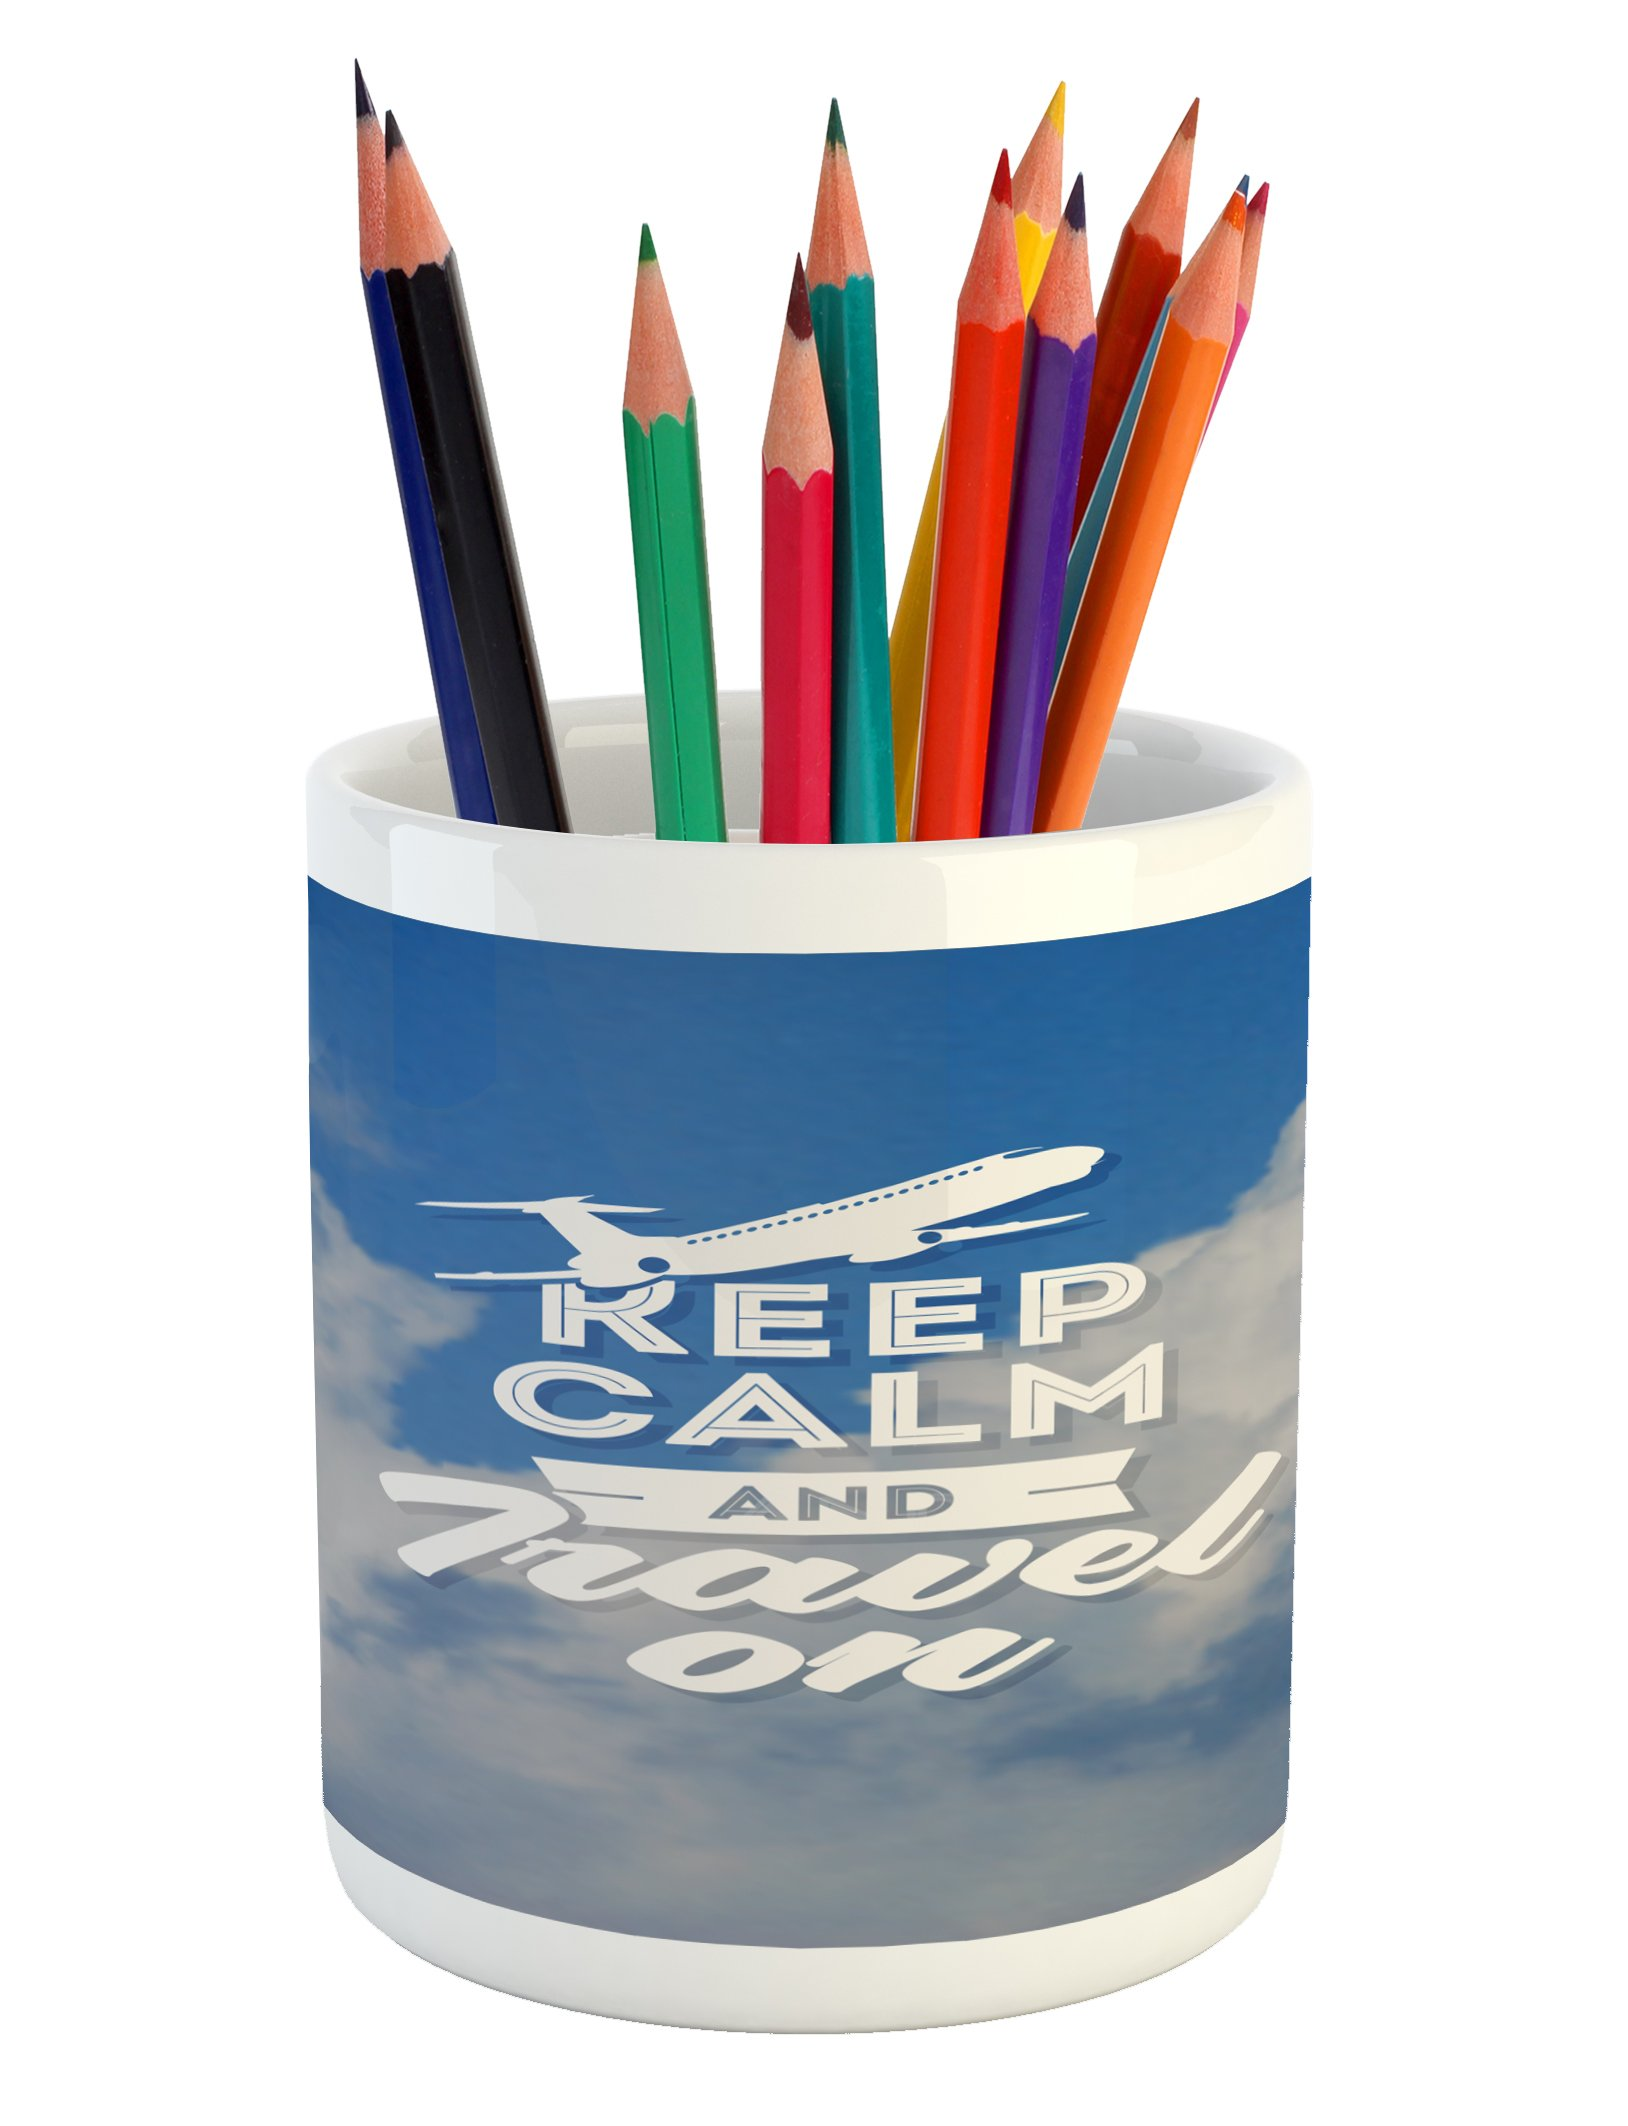 Ambesonne Quote Pencil Pen Holder, Aviation Theme Keep Calm and Trave On Message with Plane Icon and Clouds, Printed Ceramic Pencil Pen Holder for Desk Office Accessory, Cobalt Clue and White